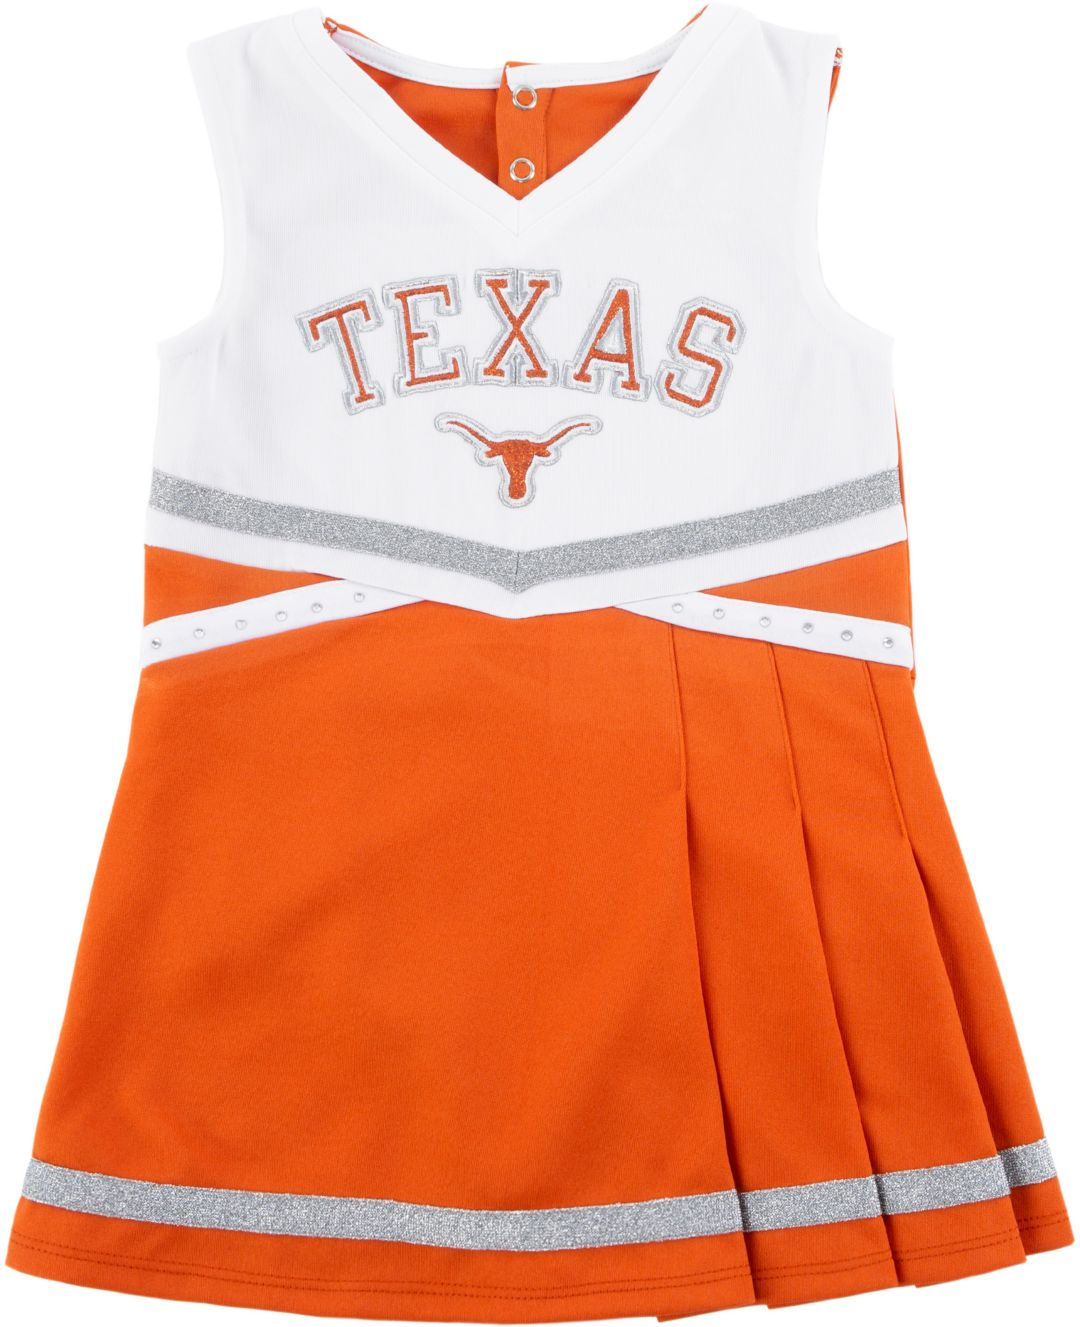 reputable site edb09 7db67 University of Texas Authentic Apparel Youth Girls' Texas Longhorns Burnt  Orange Cheer Dress